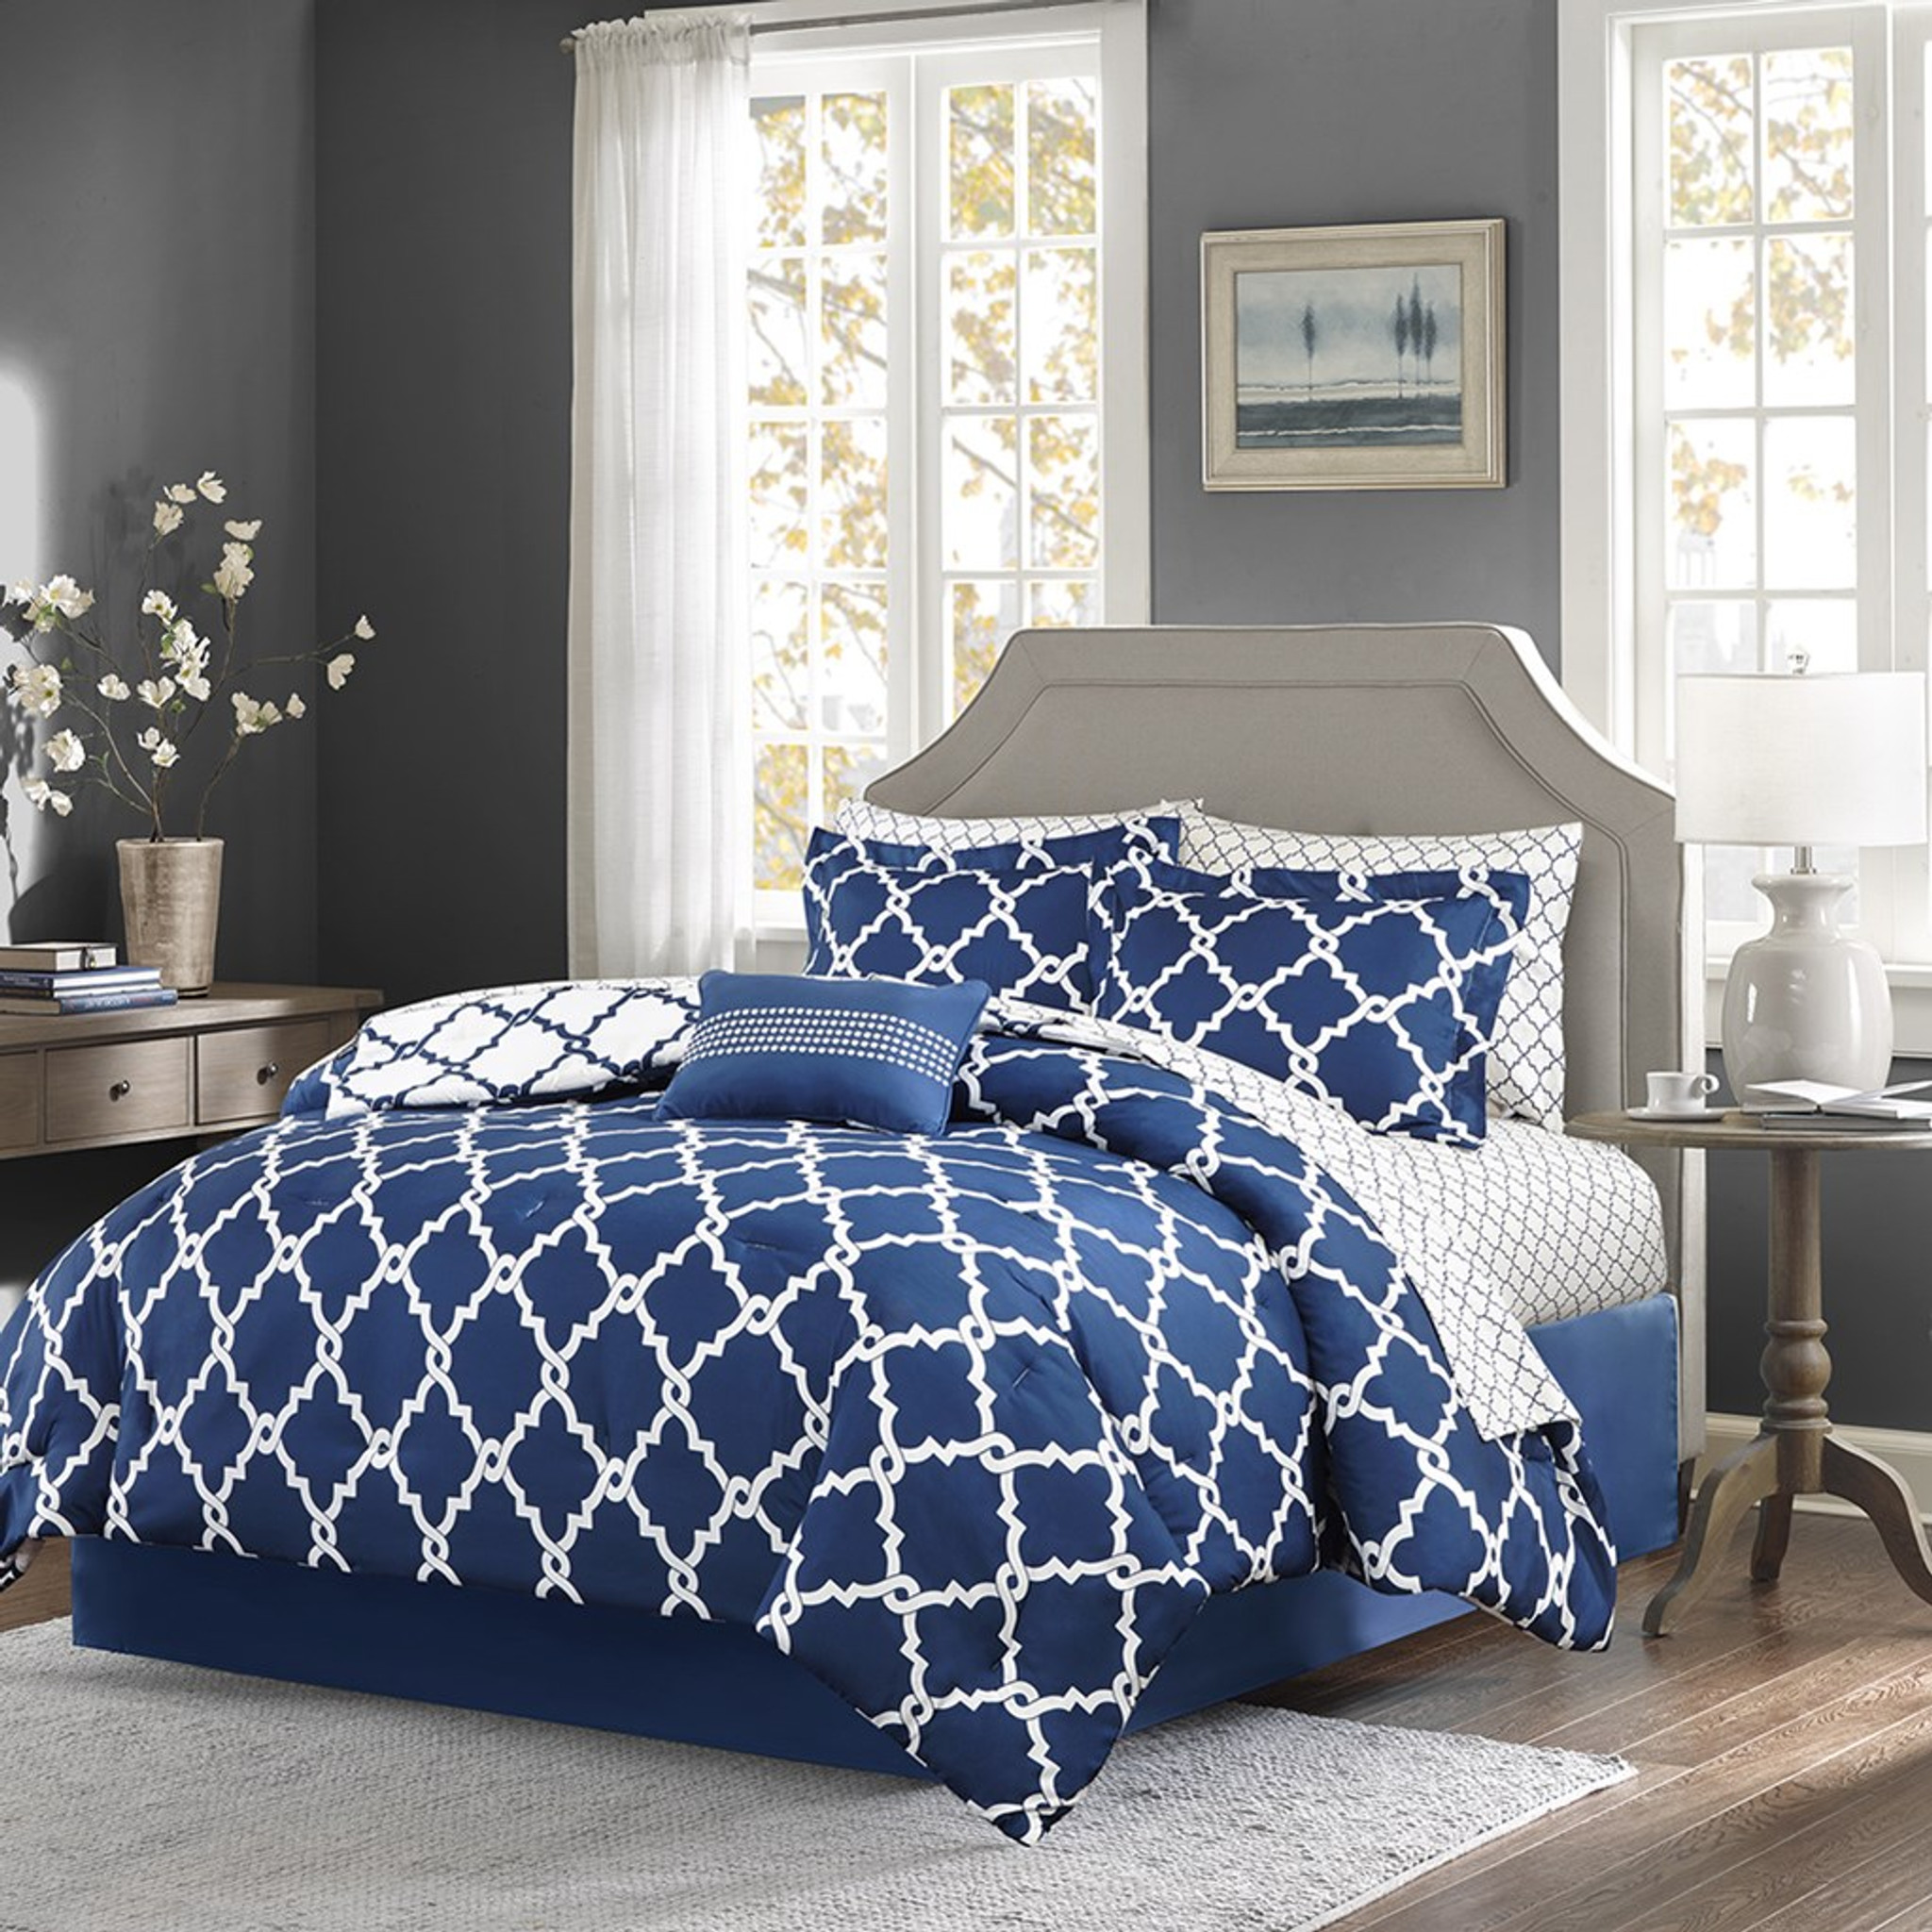 navy and white fretwork comforter set queen size